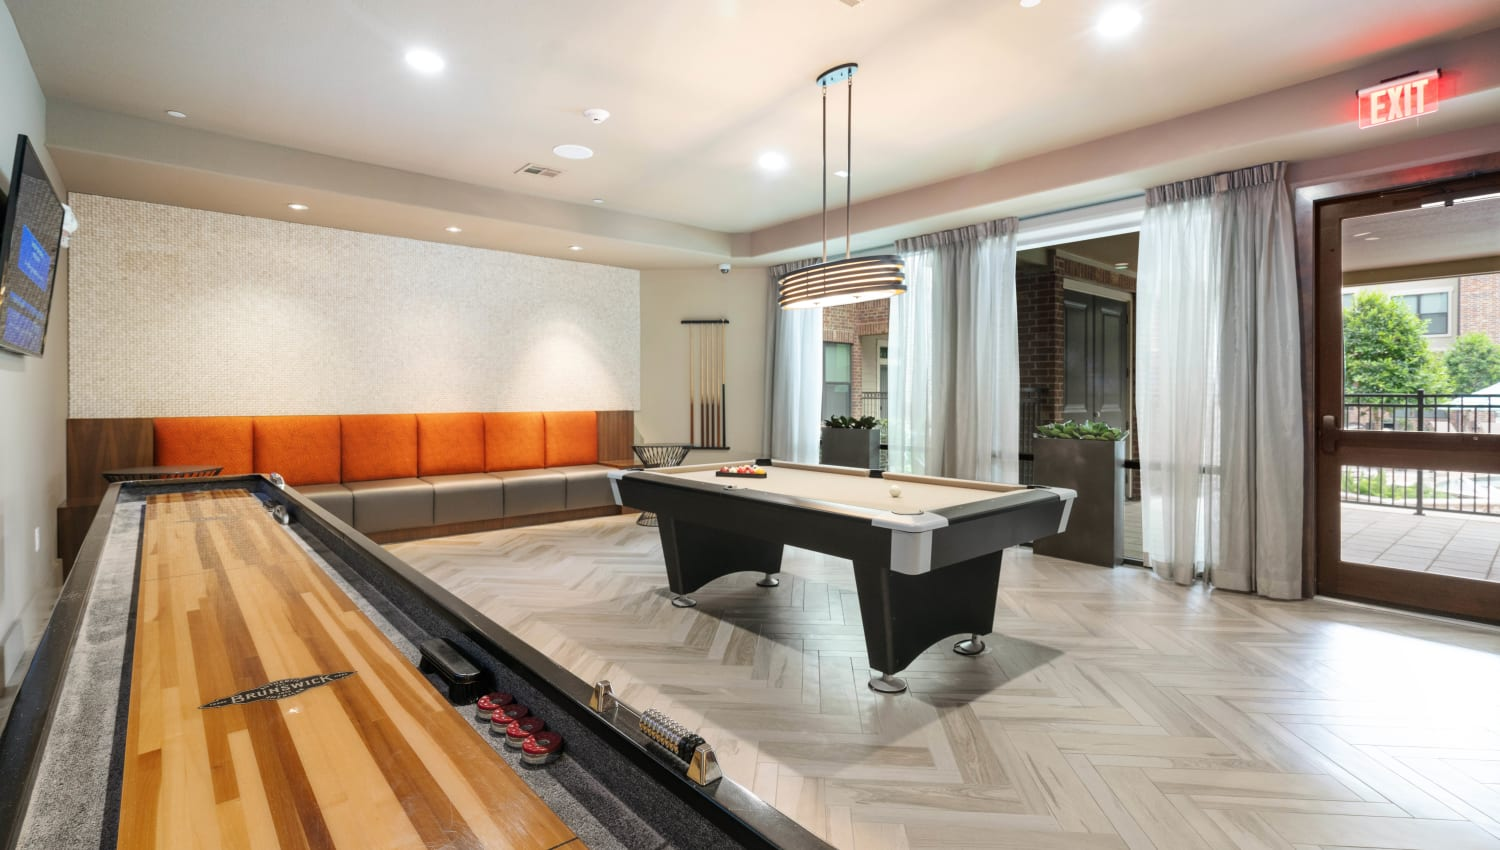 Game room with tabletop shuffleboard and billiards at Olympus Sierra Pines in The Woodlands, Texas